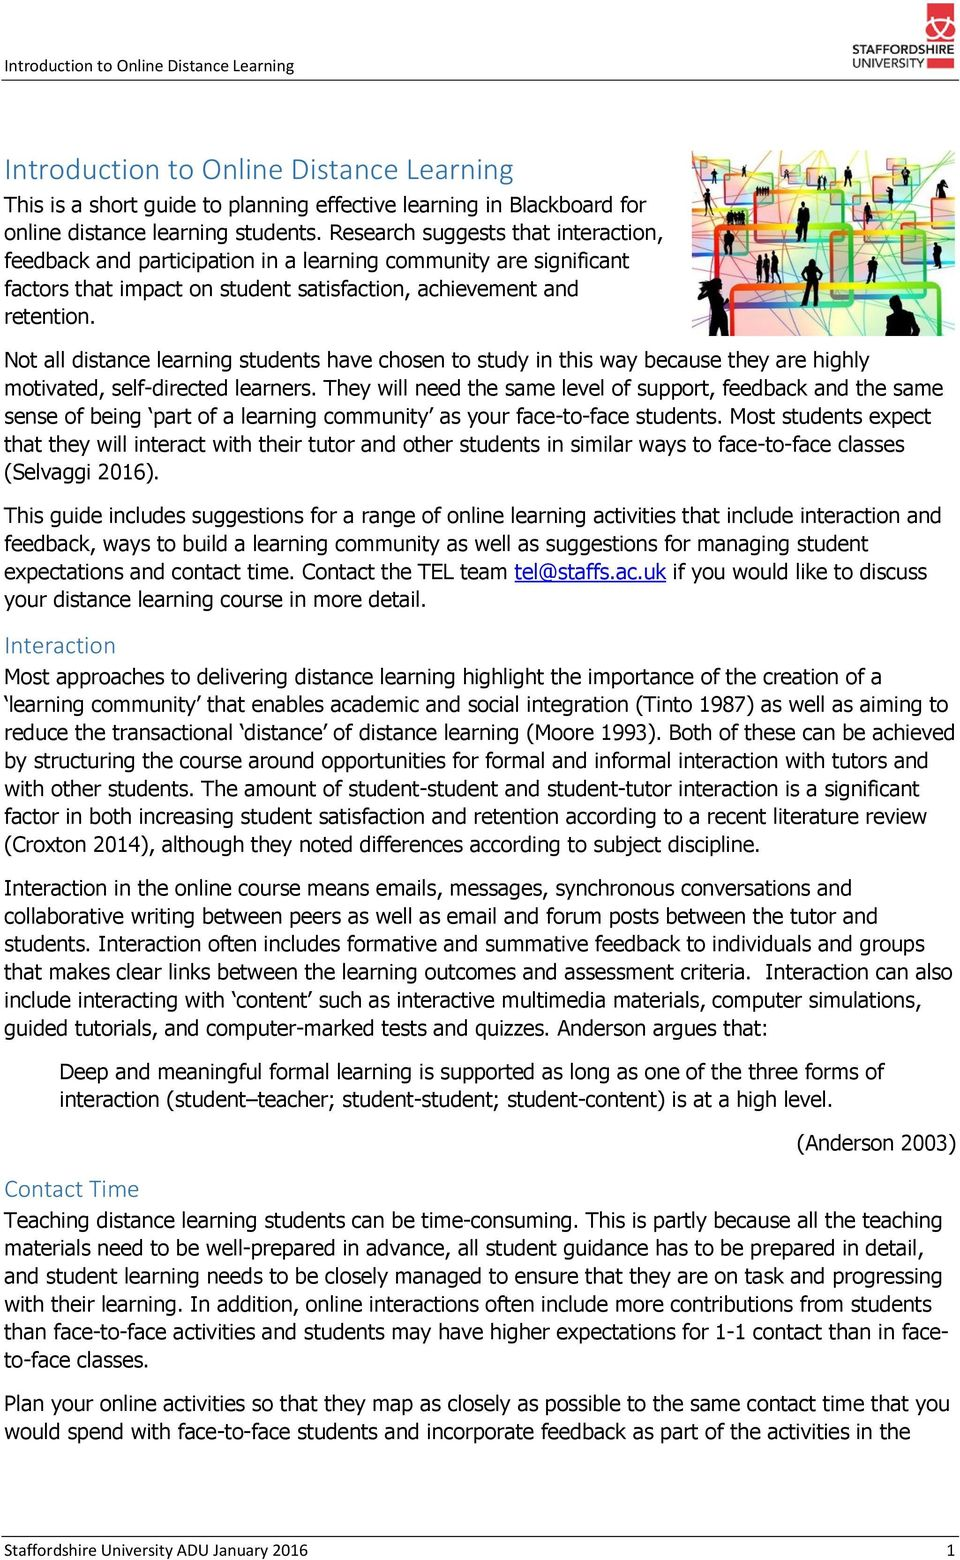 Introduction to Online Distance Learning - PDF